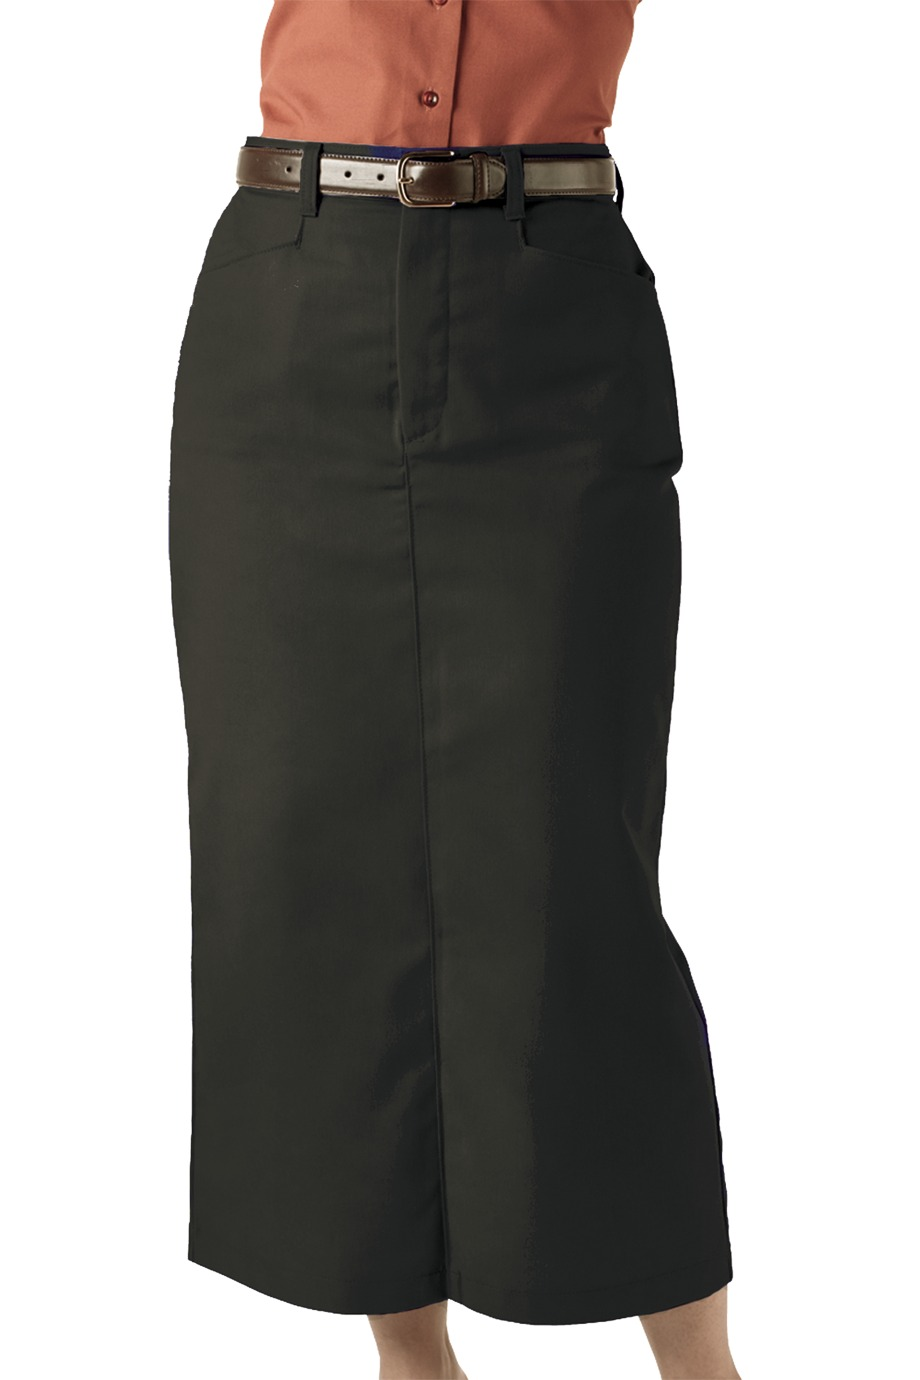 Edwards Garment 9779 - Women's Chino Skirt